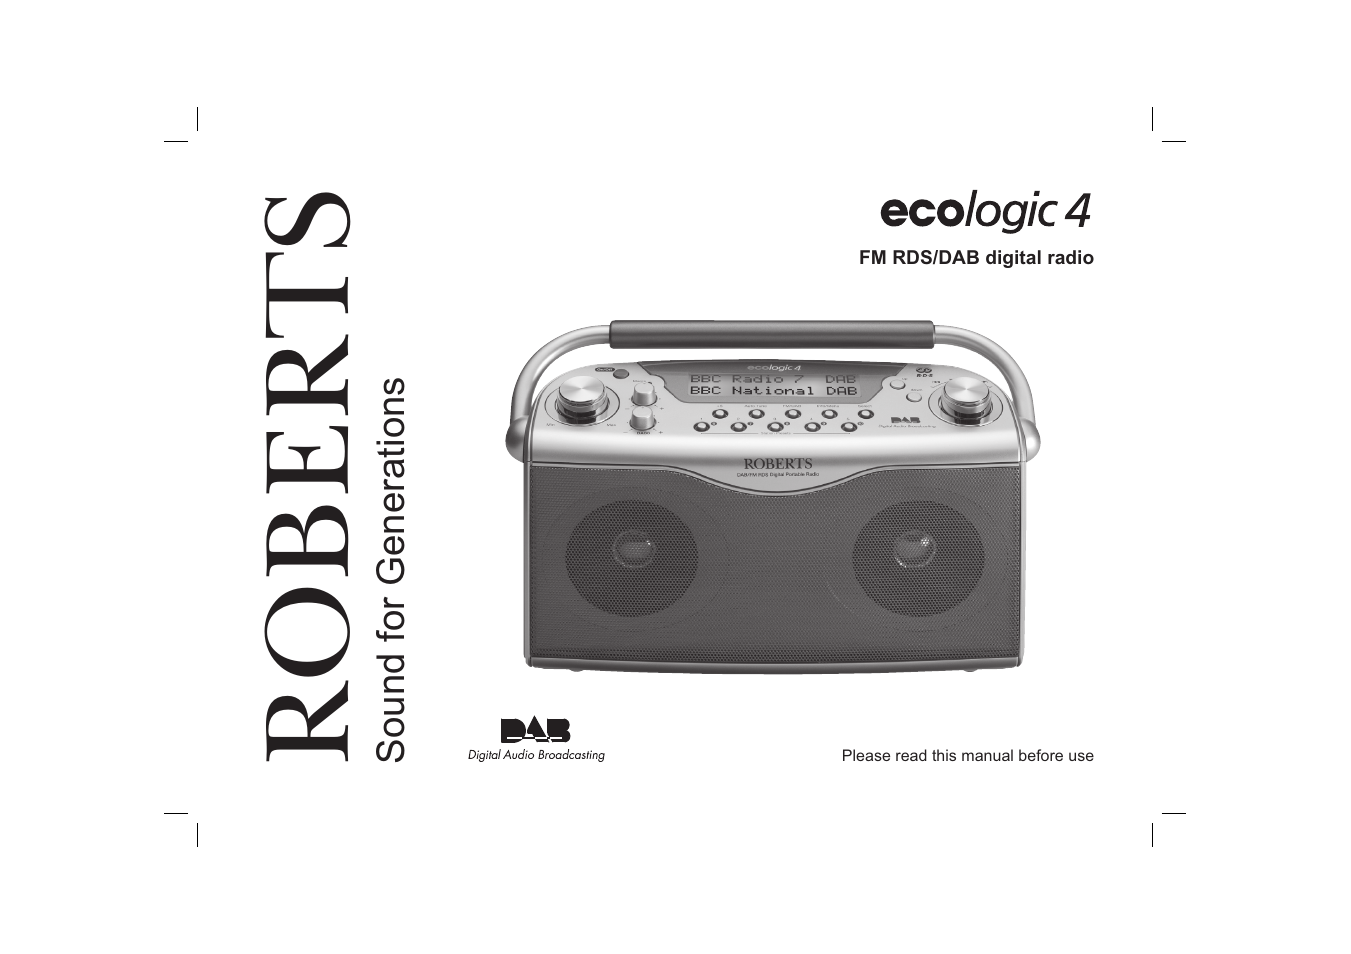 roberts radio ecologic 4 user manual 28 pages rh manualsdir com Ecologic Furniture Ecologic Fashion